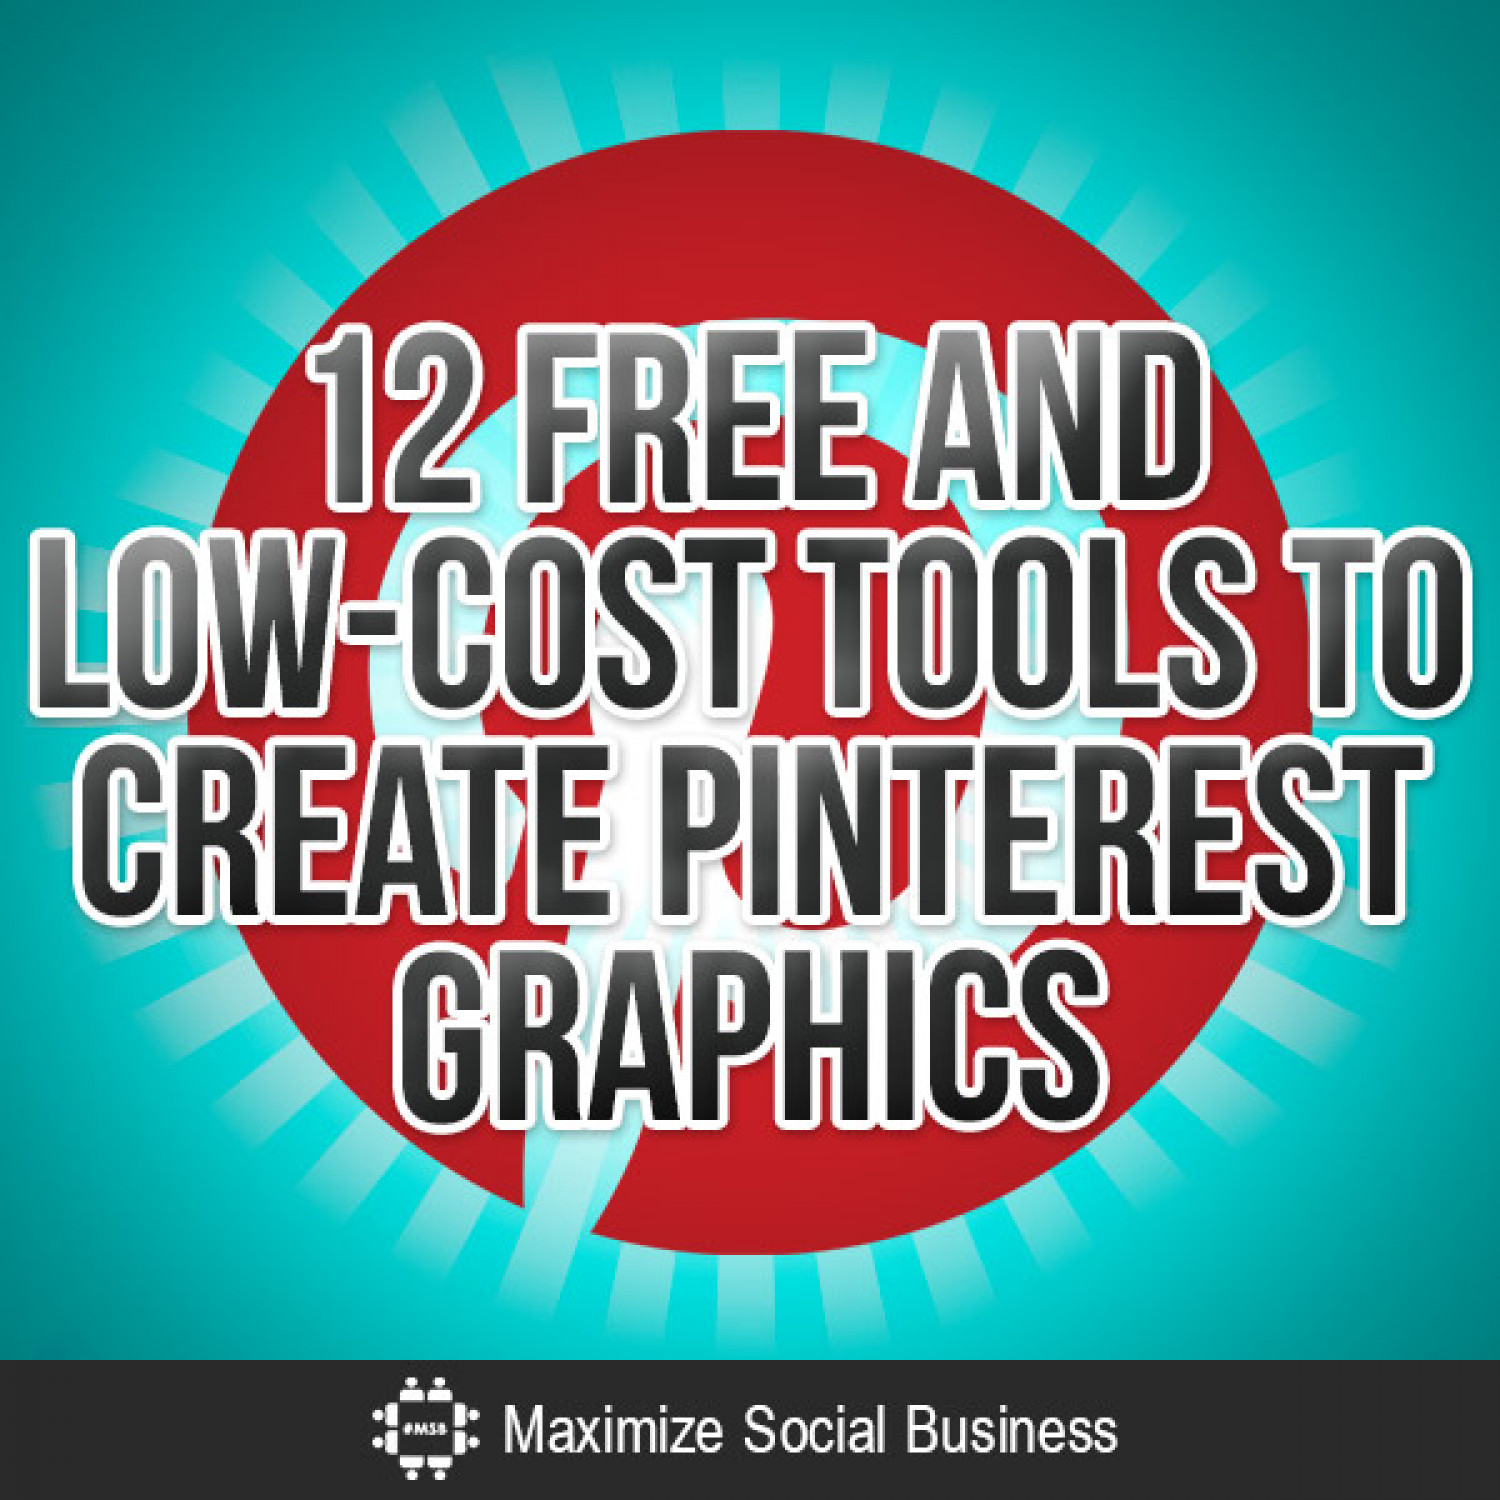 12 Free and Low-Cost Tools to Create Pinterest Graphics Infographic